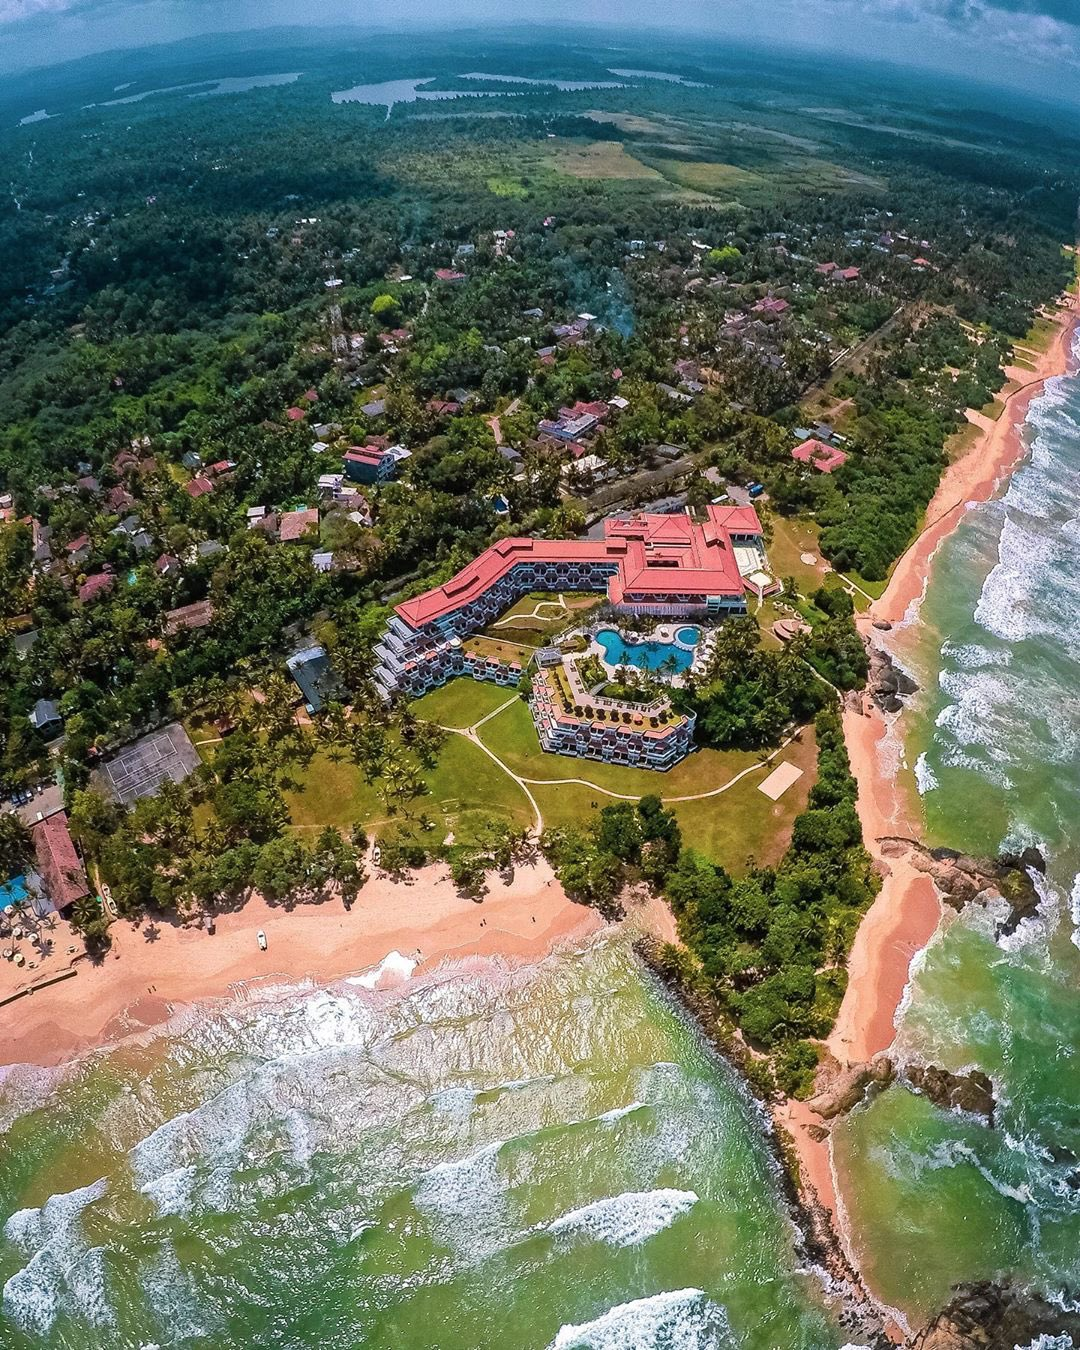 🇱🇰#Beauty_of_Srilanka🇱🇰  #TravelSrilanka  #Bentota_Beach  One of my favorite places in Sri Lanka is the beautiful resort town of Bentota. With a backwater river on one side & the lagoon on the other, this town is full of picturesque views  #Bentota | #Galle | #Srilanka  📸 Rahul https://t.co/FFfs1q82q5